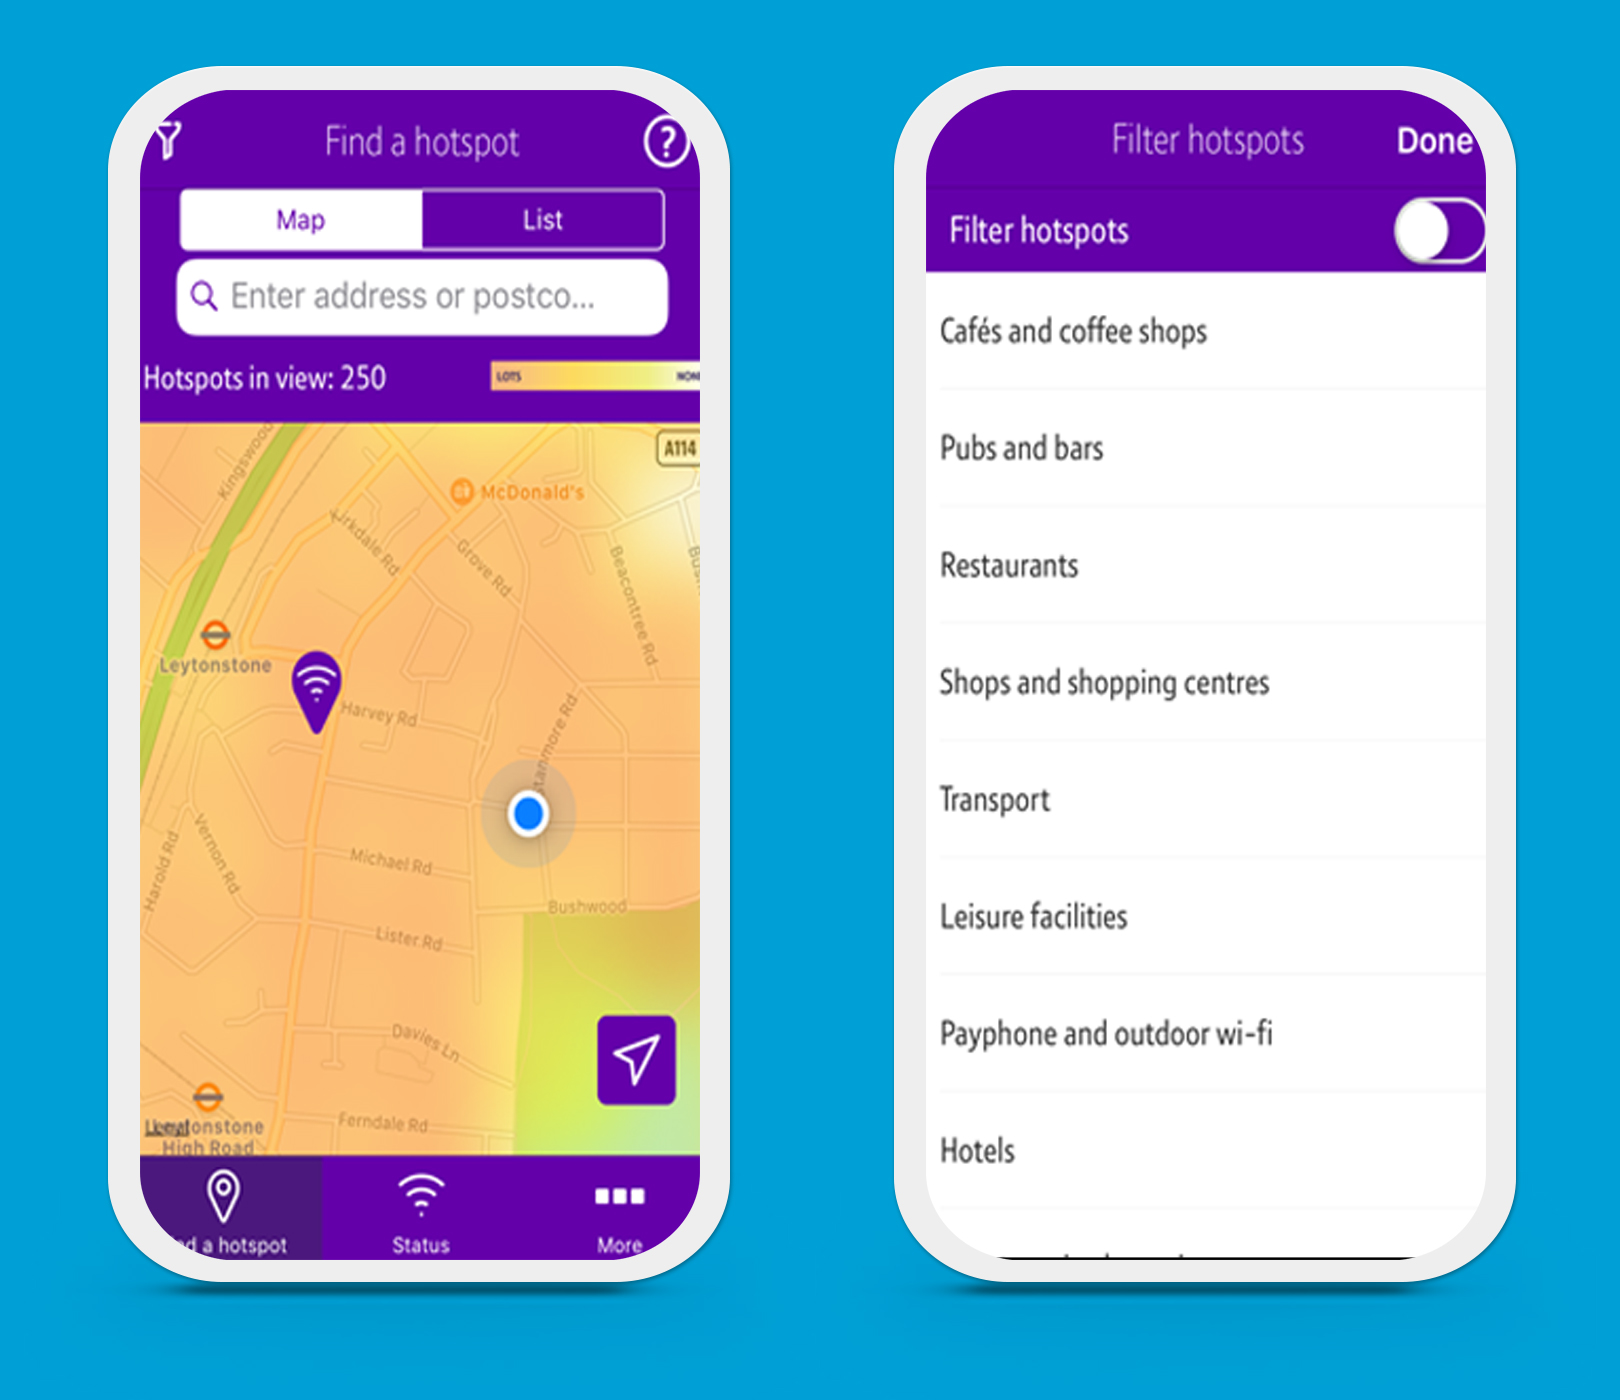 How to connect to BT Wi-Fi hotspots using your smartphone | BT